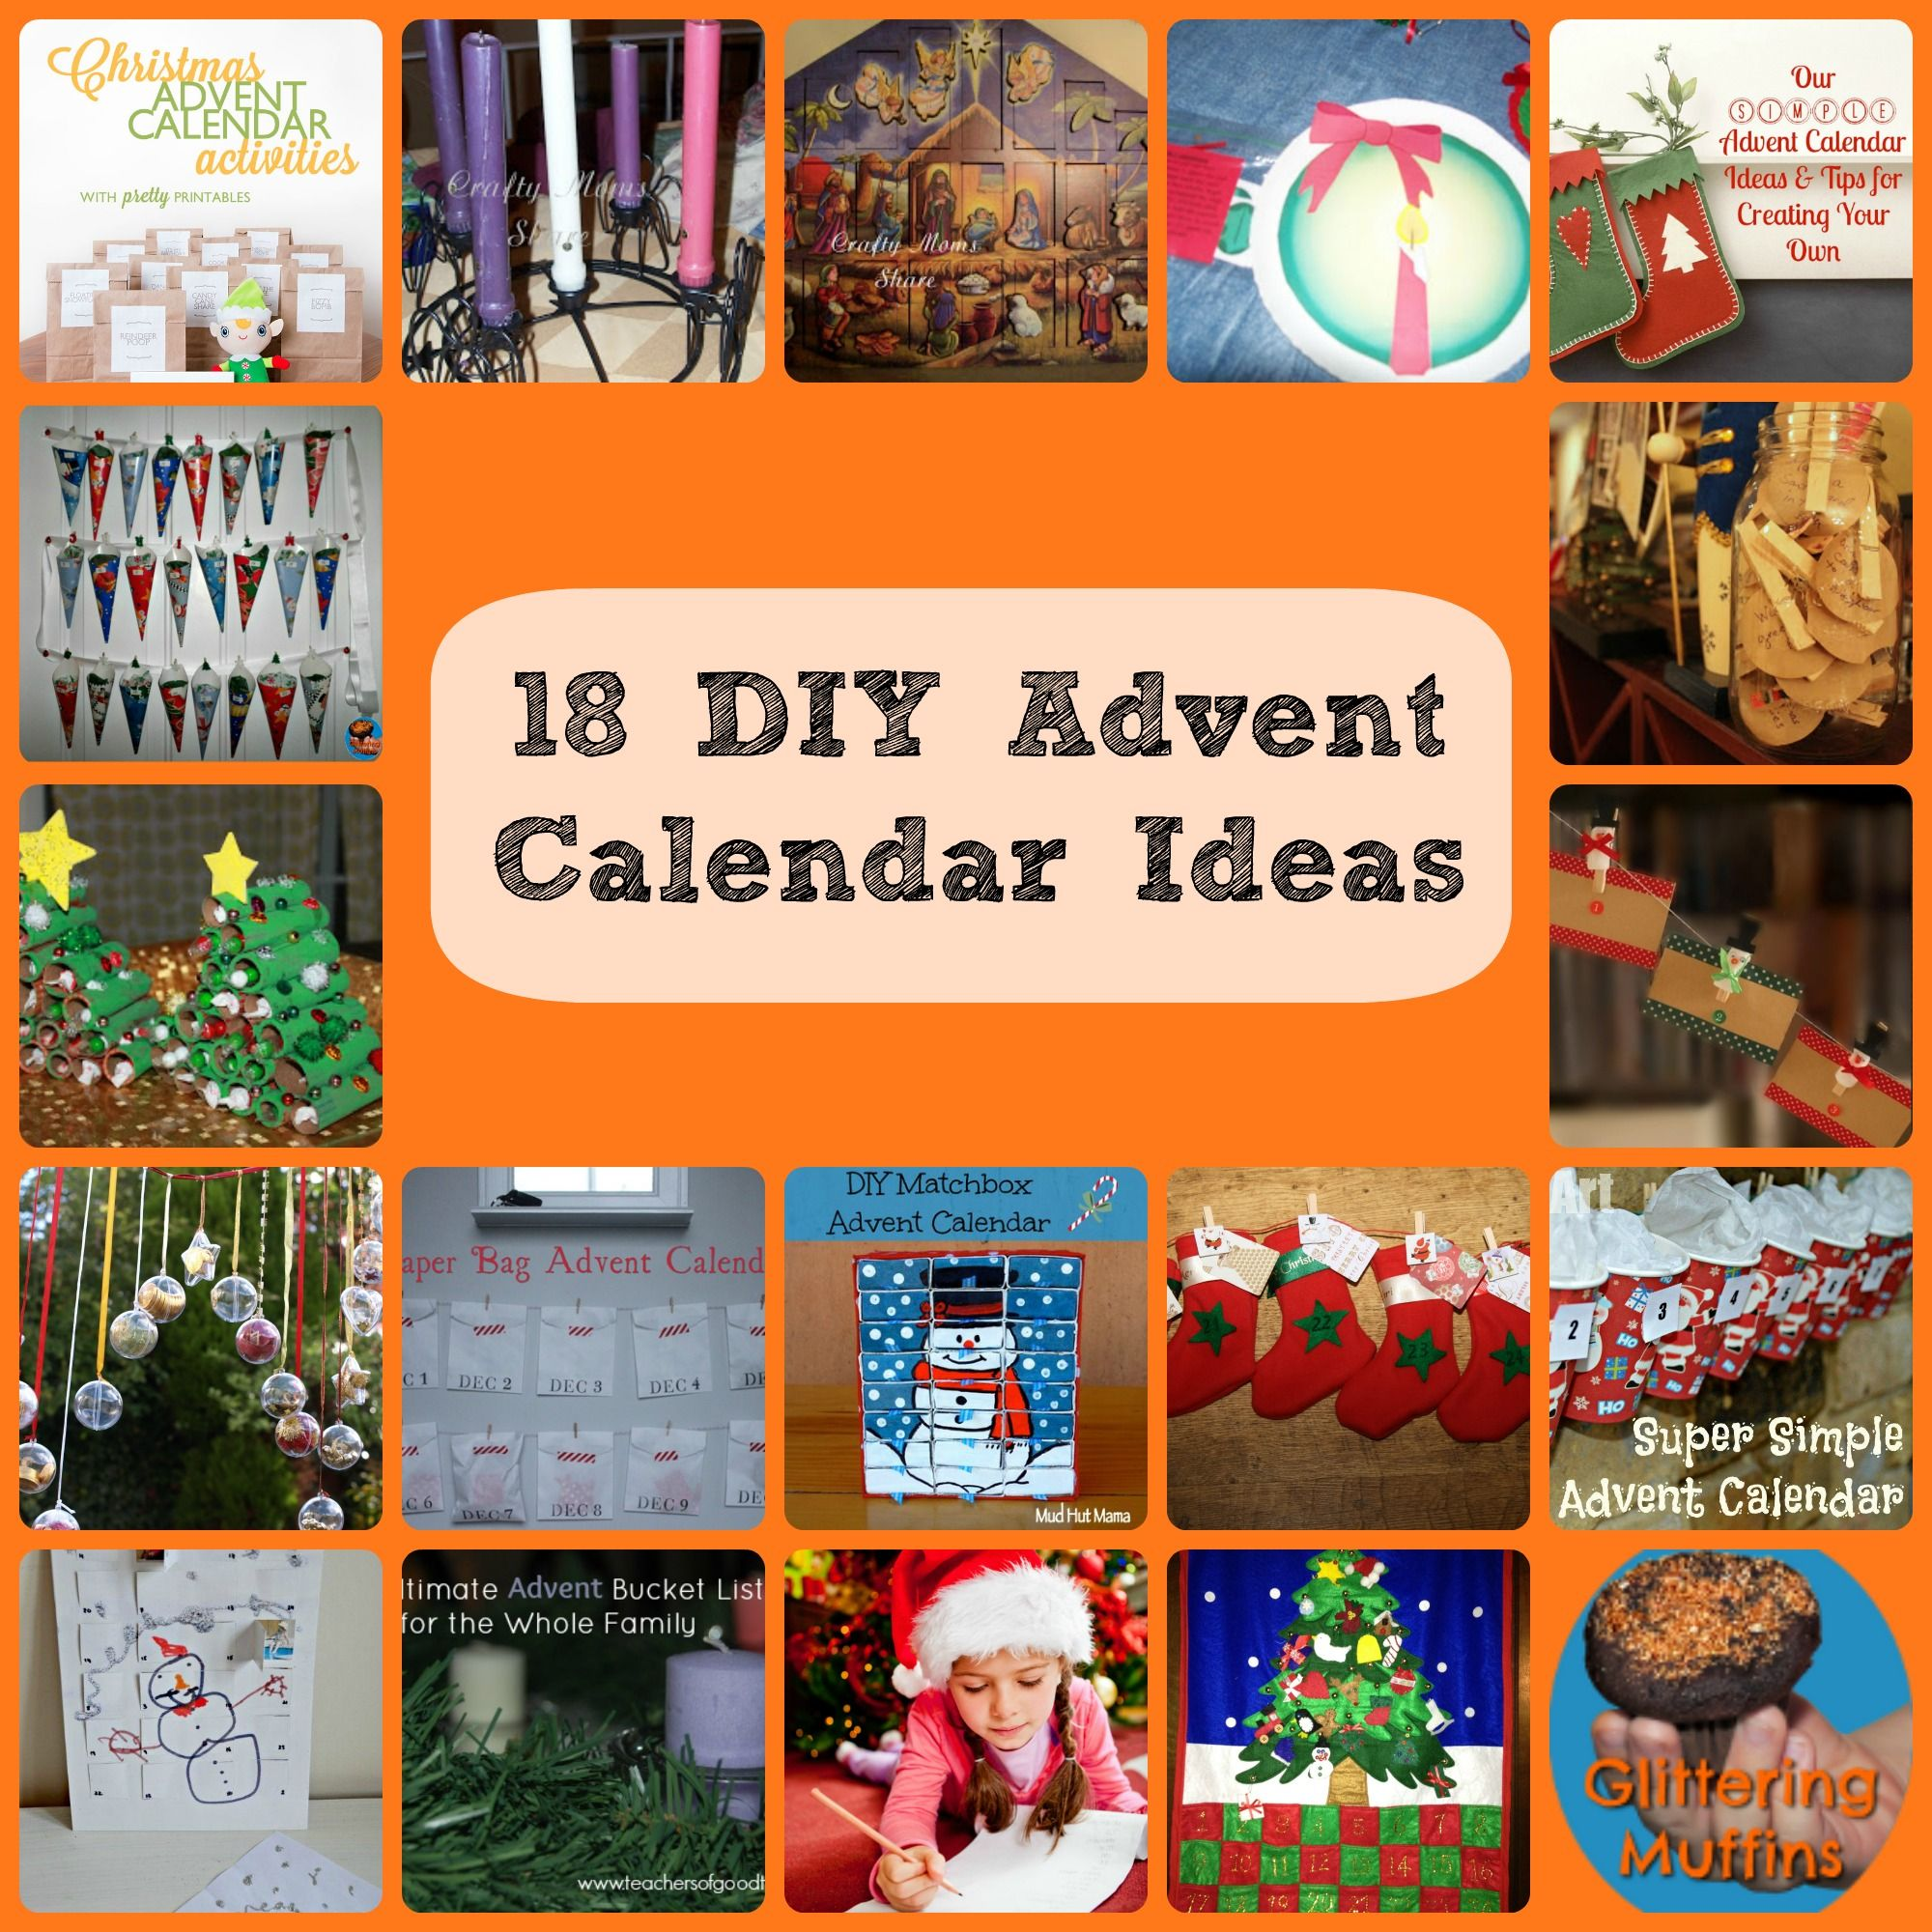 Calendar Advent Diy : Diy advent calendar ideas kid ger network